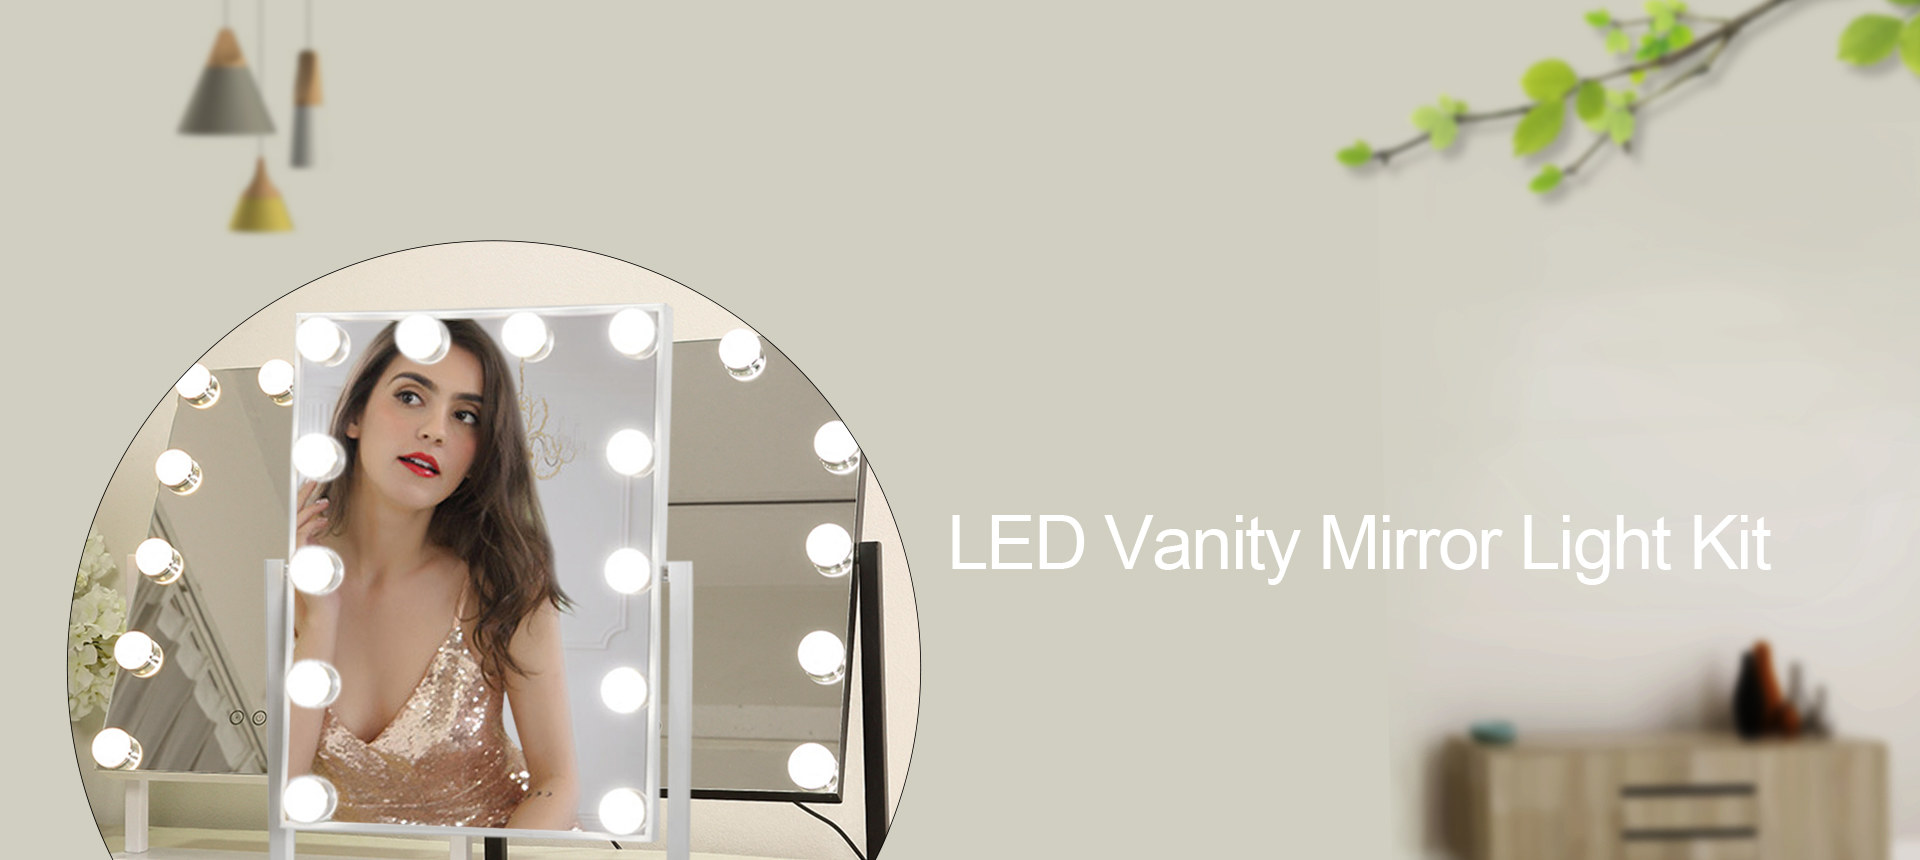 Vanity Mirror Light Banner